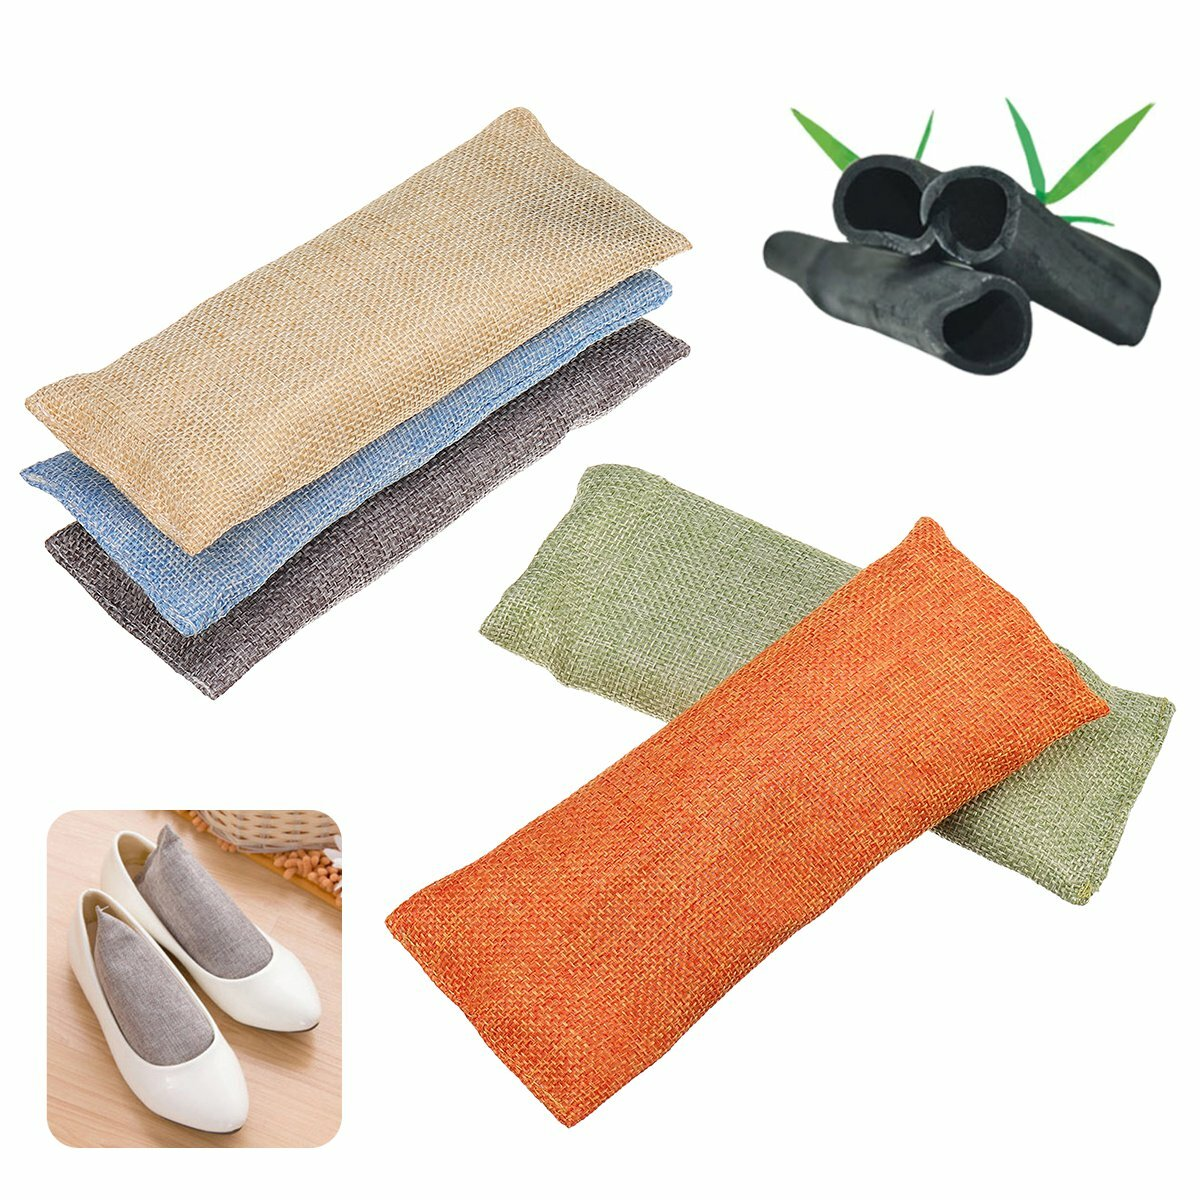 2 Bags Activated Bamboo Charcoal Air Purifying Bag For Shoes Sneakers Bags Fridge Freezers Drawer Tray Room Home Car